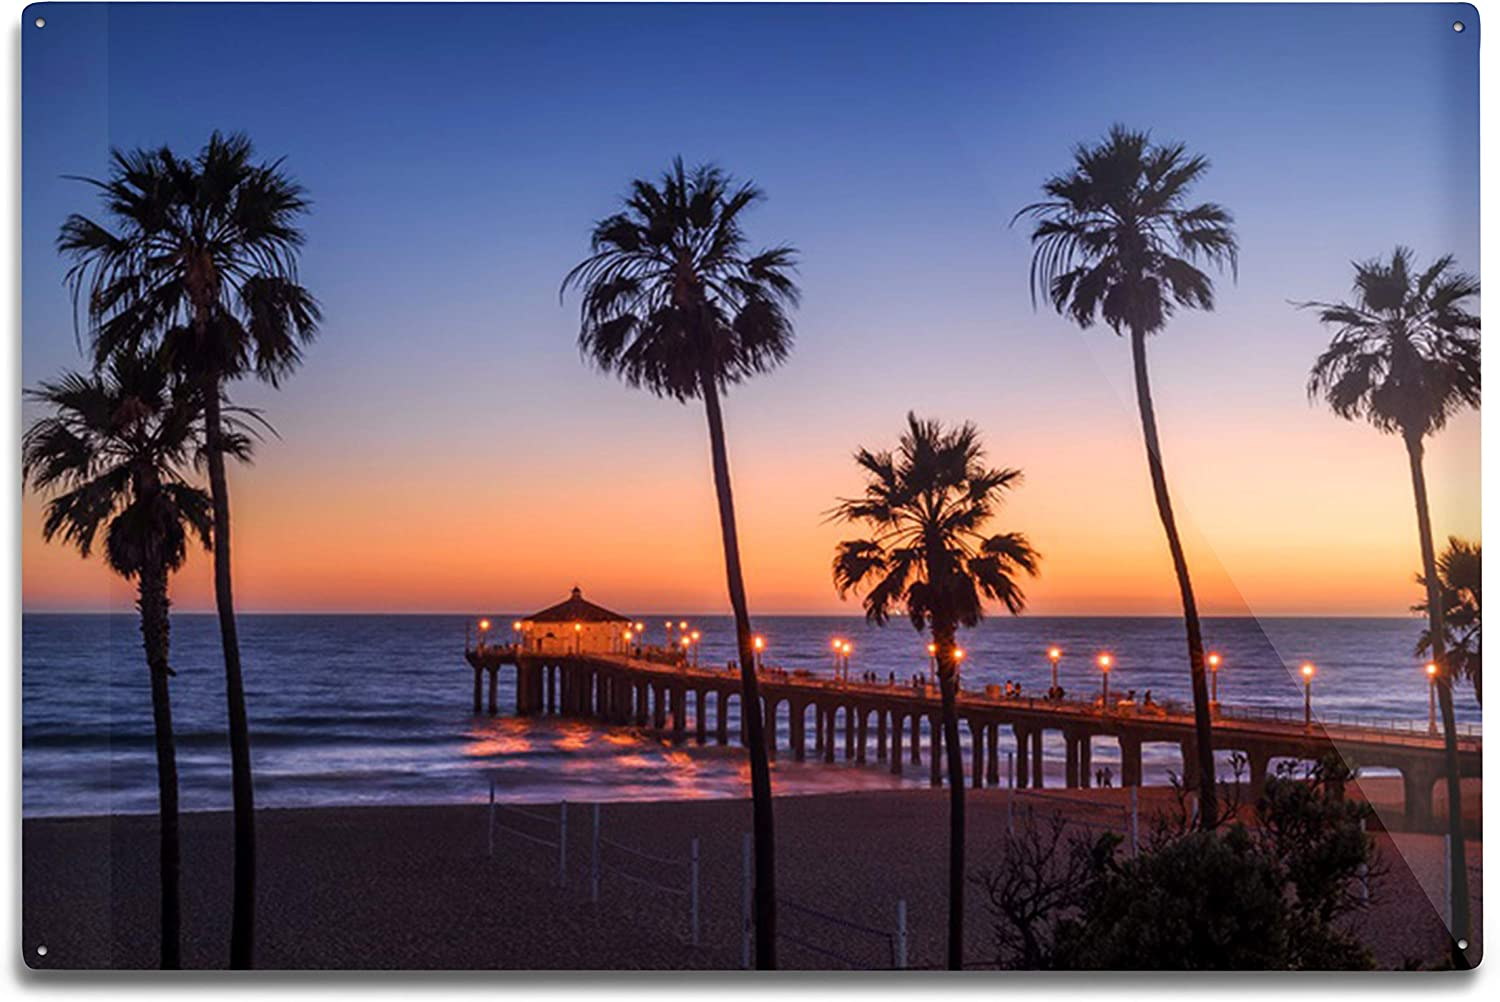 Amazon Com Manhattan Beach Pier At Sunset Los Angeles California Photography A 91249 12x18 Art Print Wall Decor Travel Poster Posters Prints